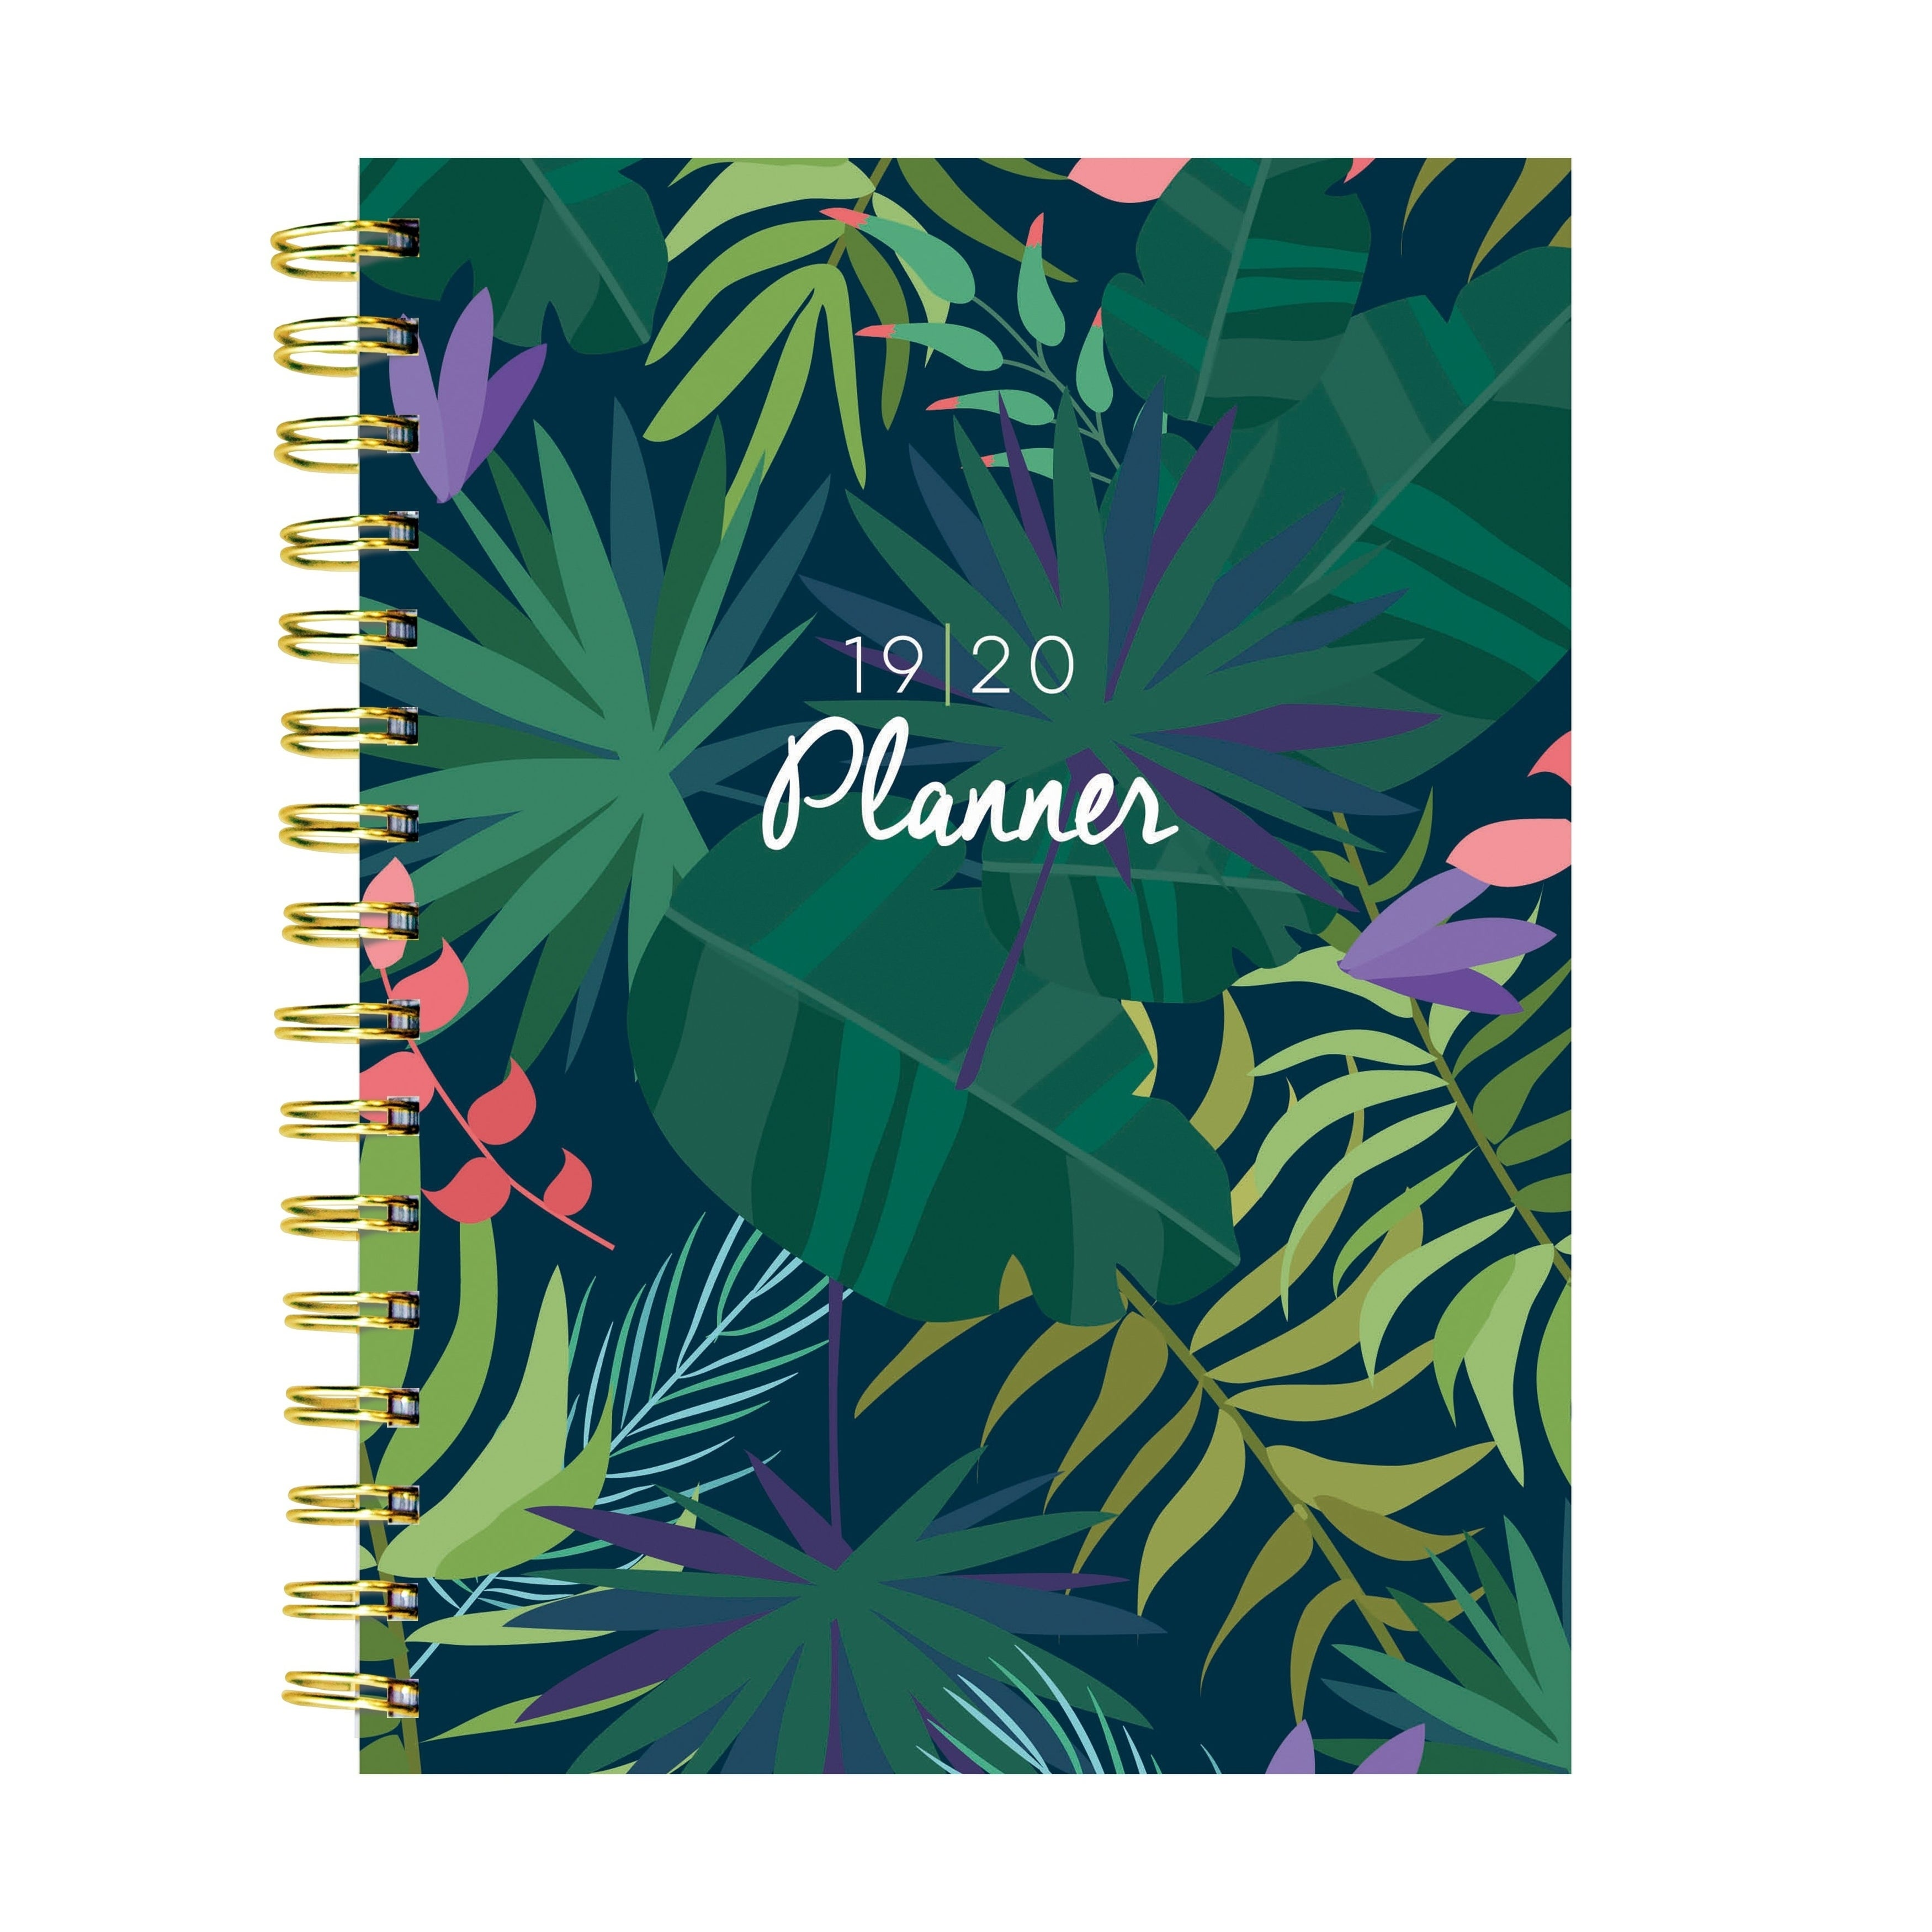 image about Stylish Planners and Organizers identified as Acquire Planners Organizers On line at Overstock Our Great